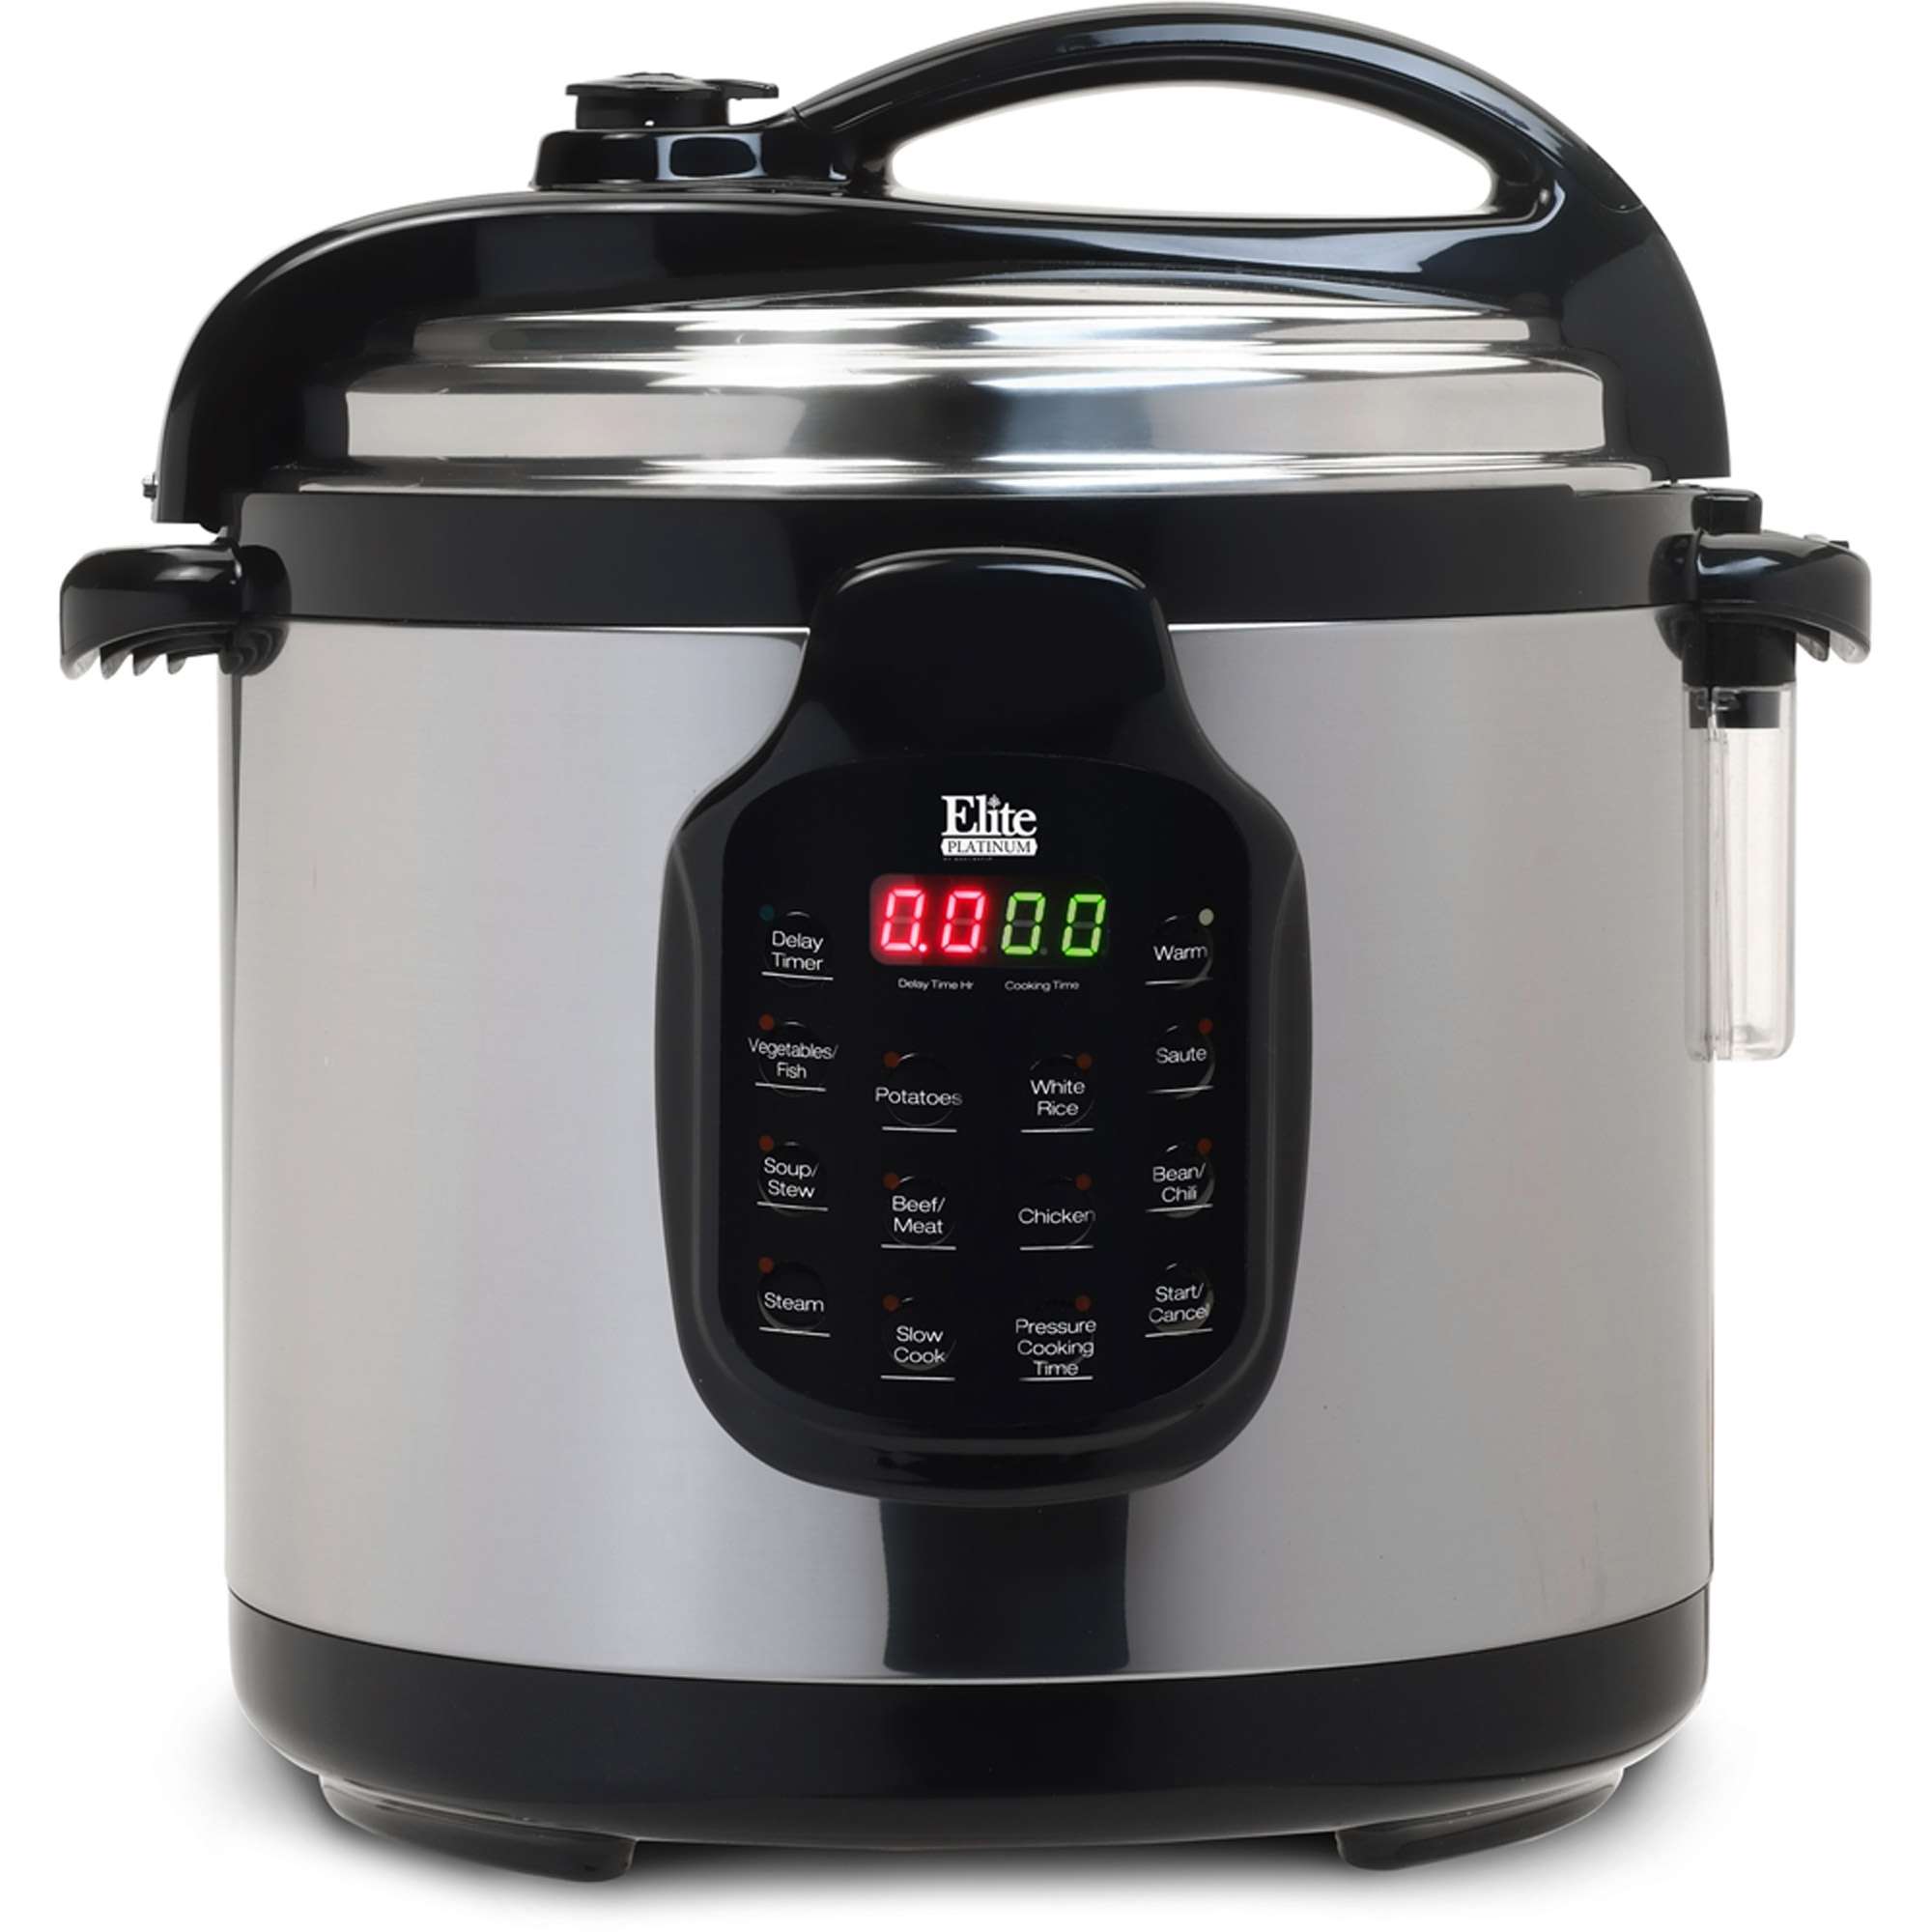 Elite Platinum EPC-678SS 6 qt Electric Stainless Steel Pressure Cooker with Stainless Steel Pot